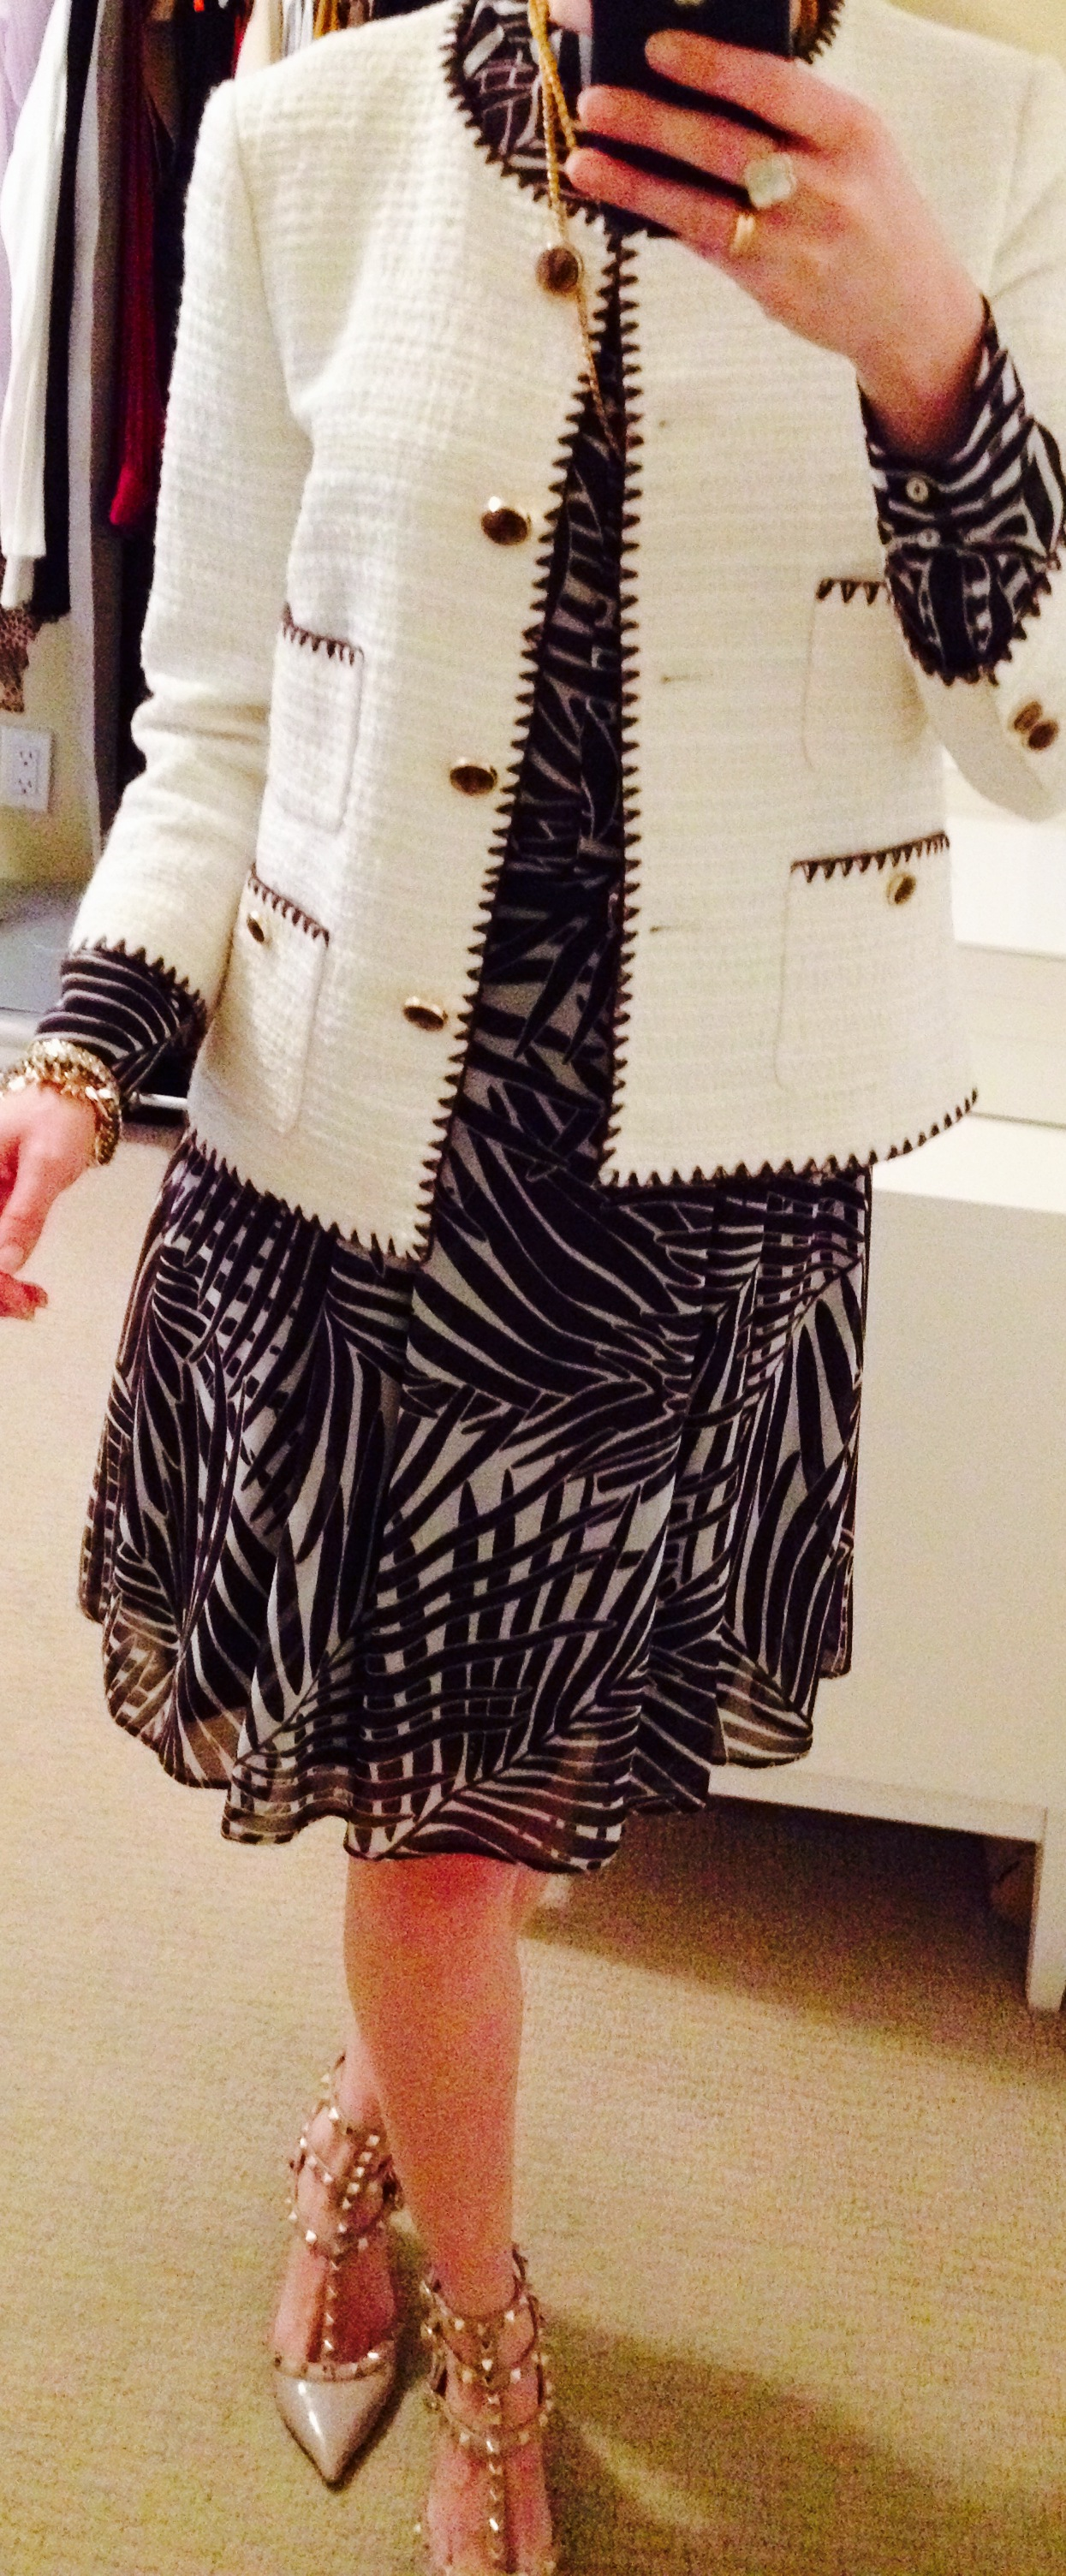 Woven Jacket over Palm Print dress